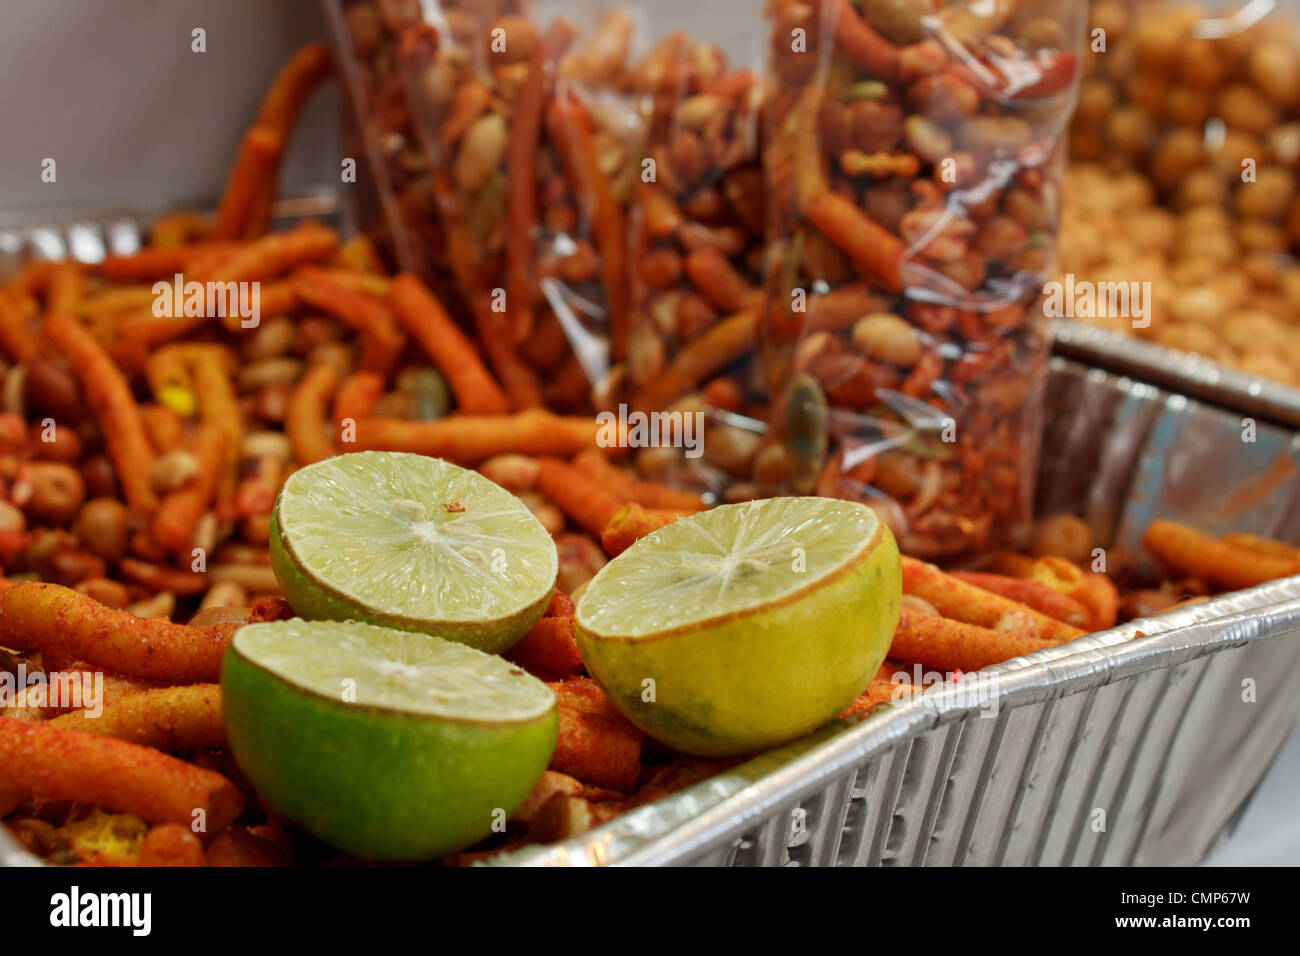 Junk food for sale in Mexican market. - Stock Image